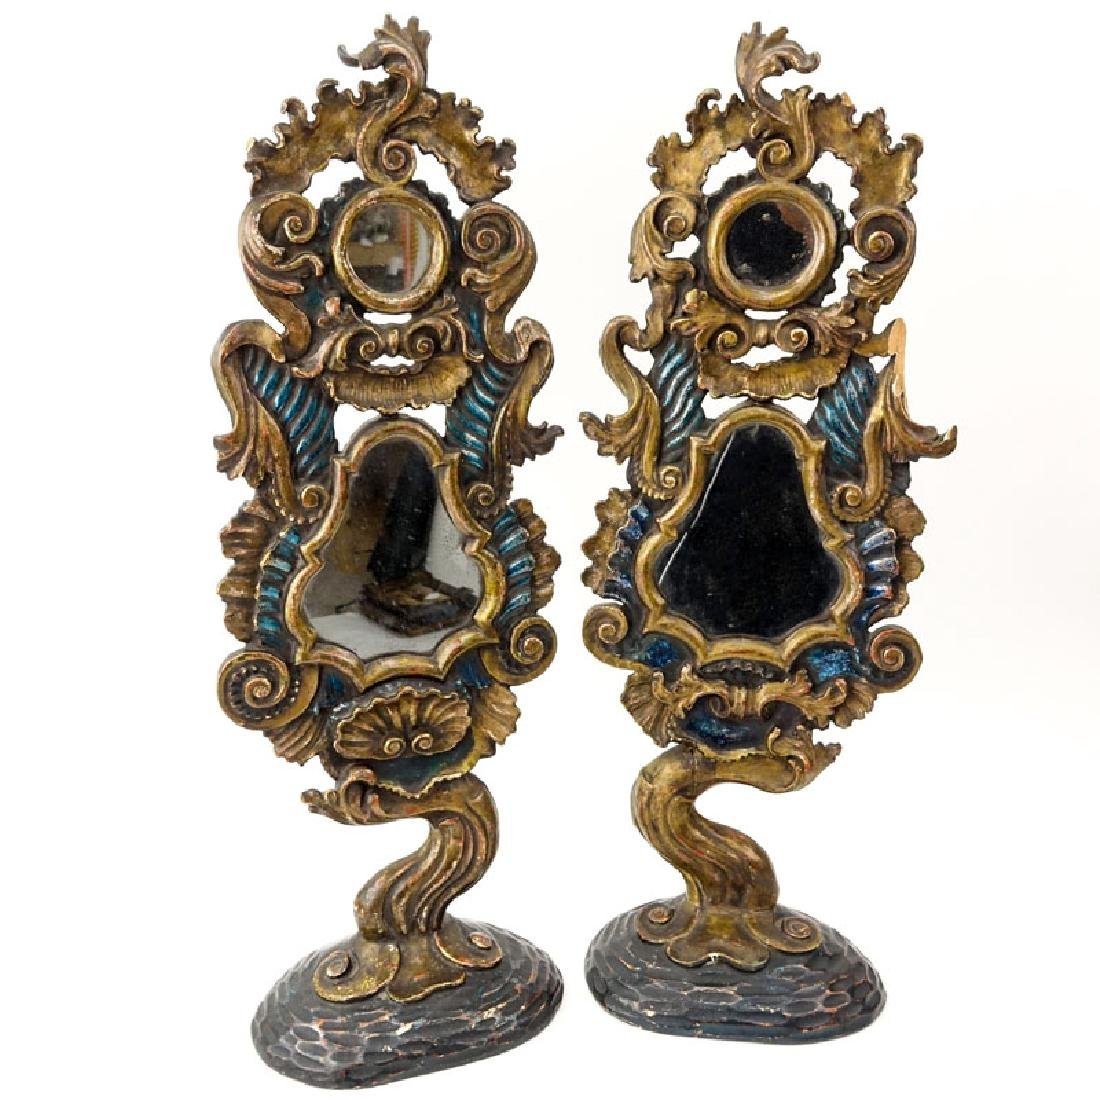 Pair of Italian Rococo Style Polychrome Carved Wood